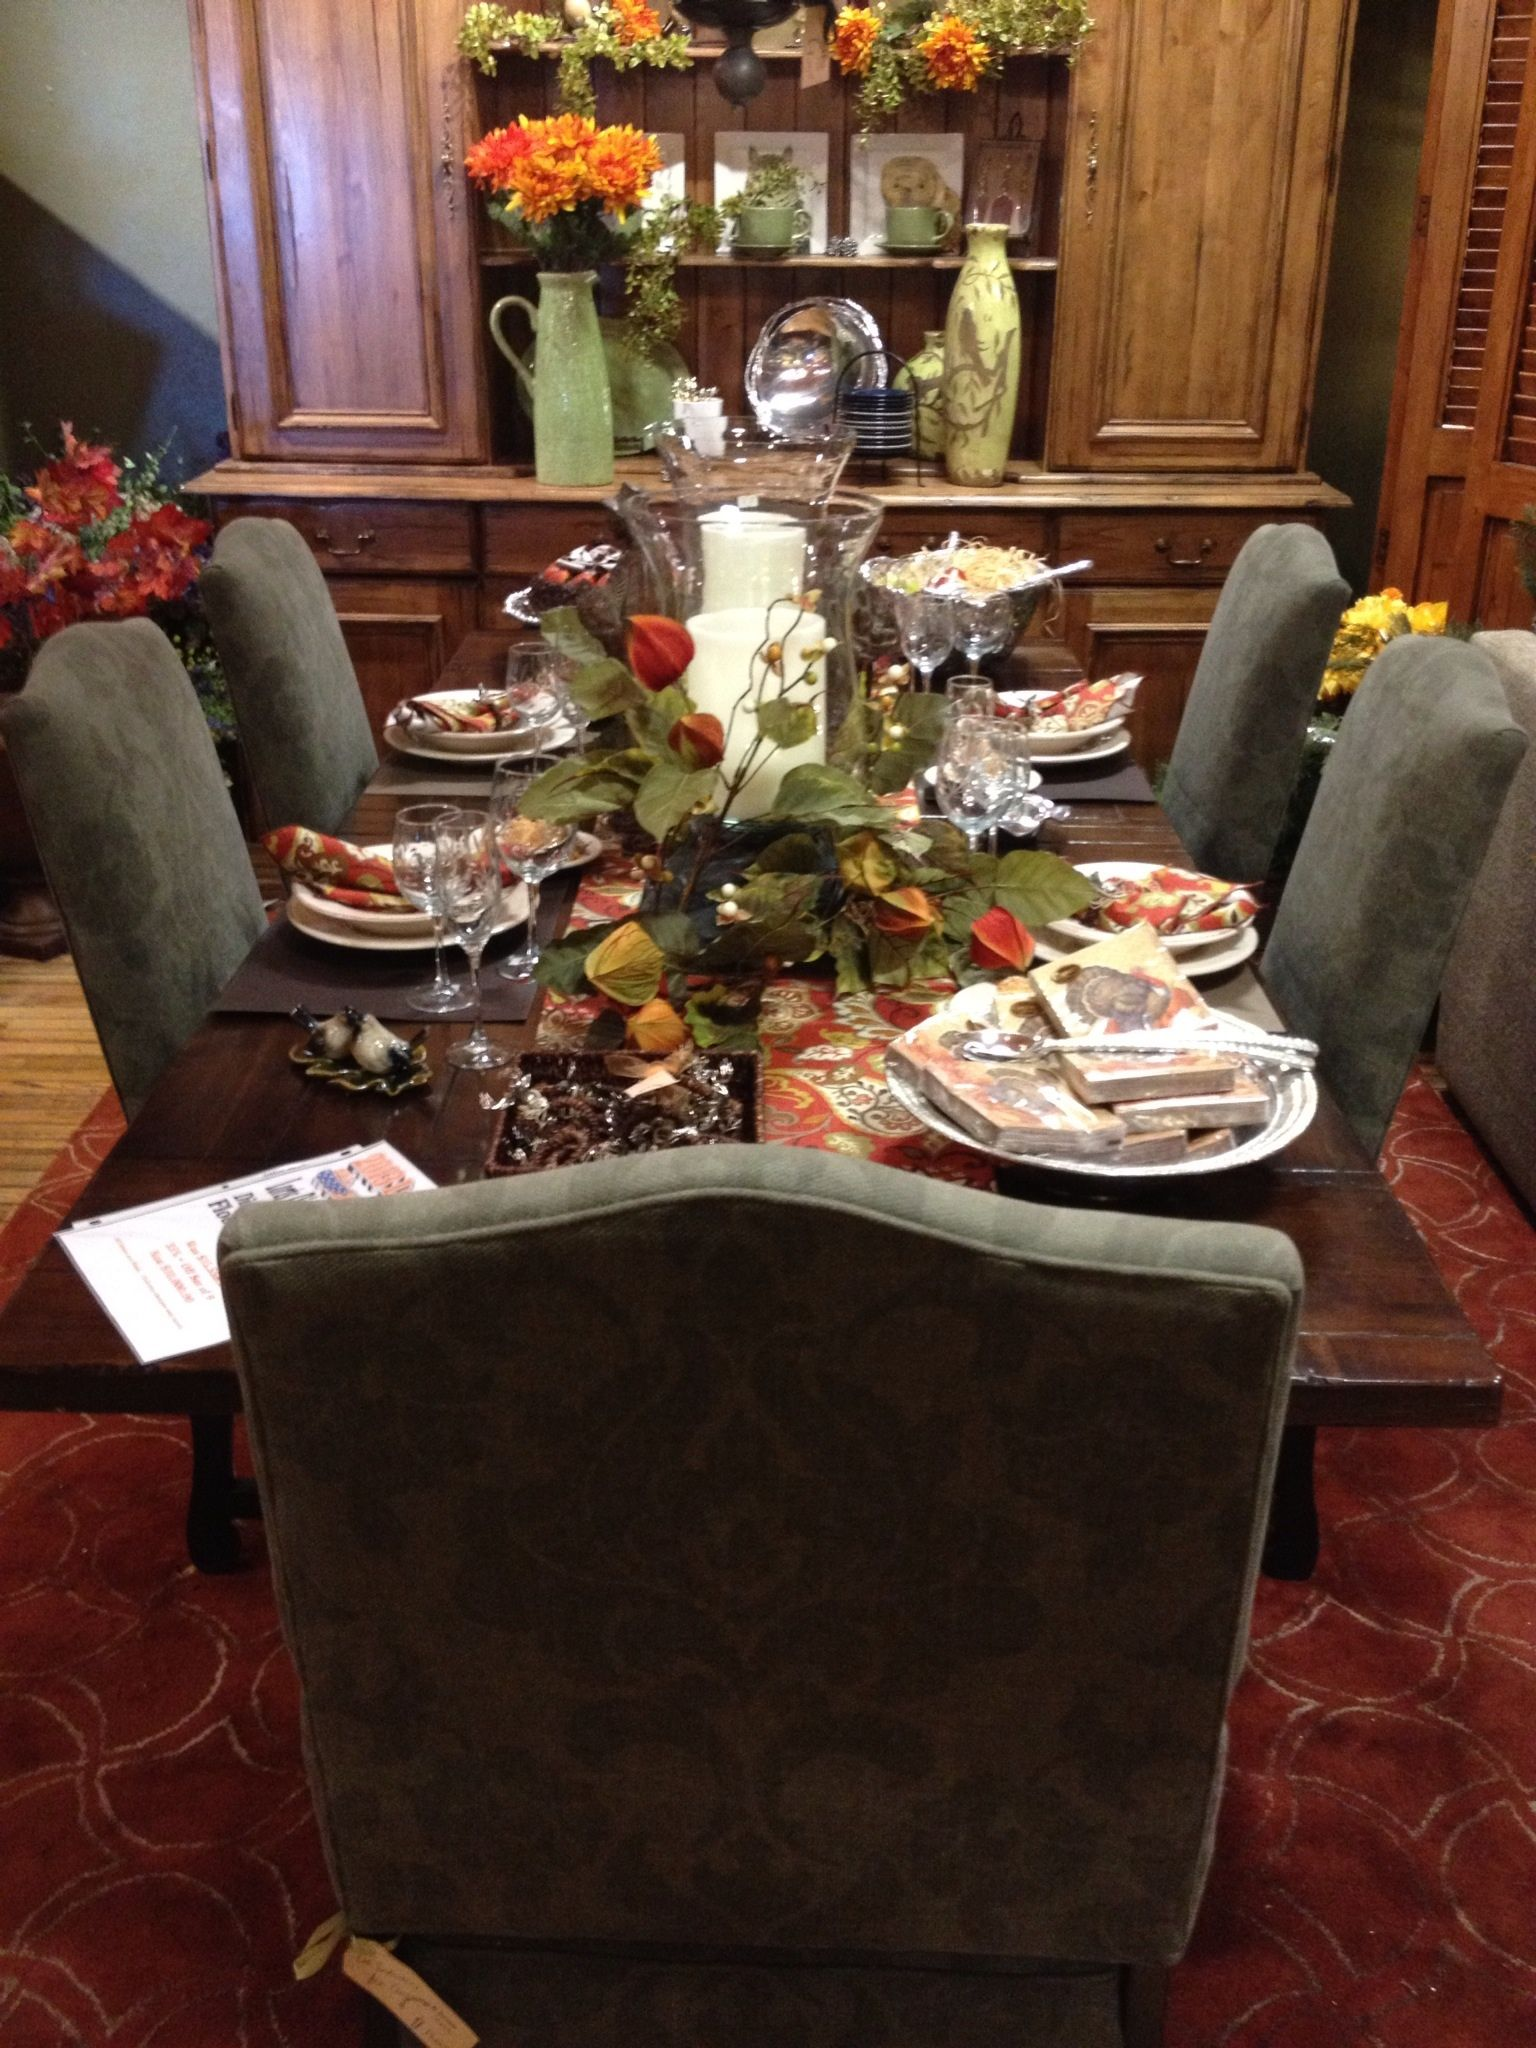 Dining table from Lorts with chairs from Lee Industries